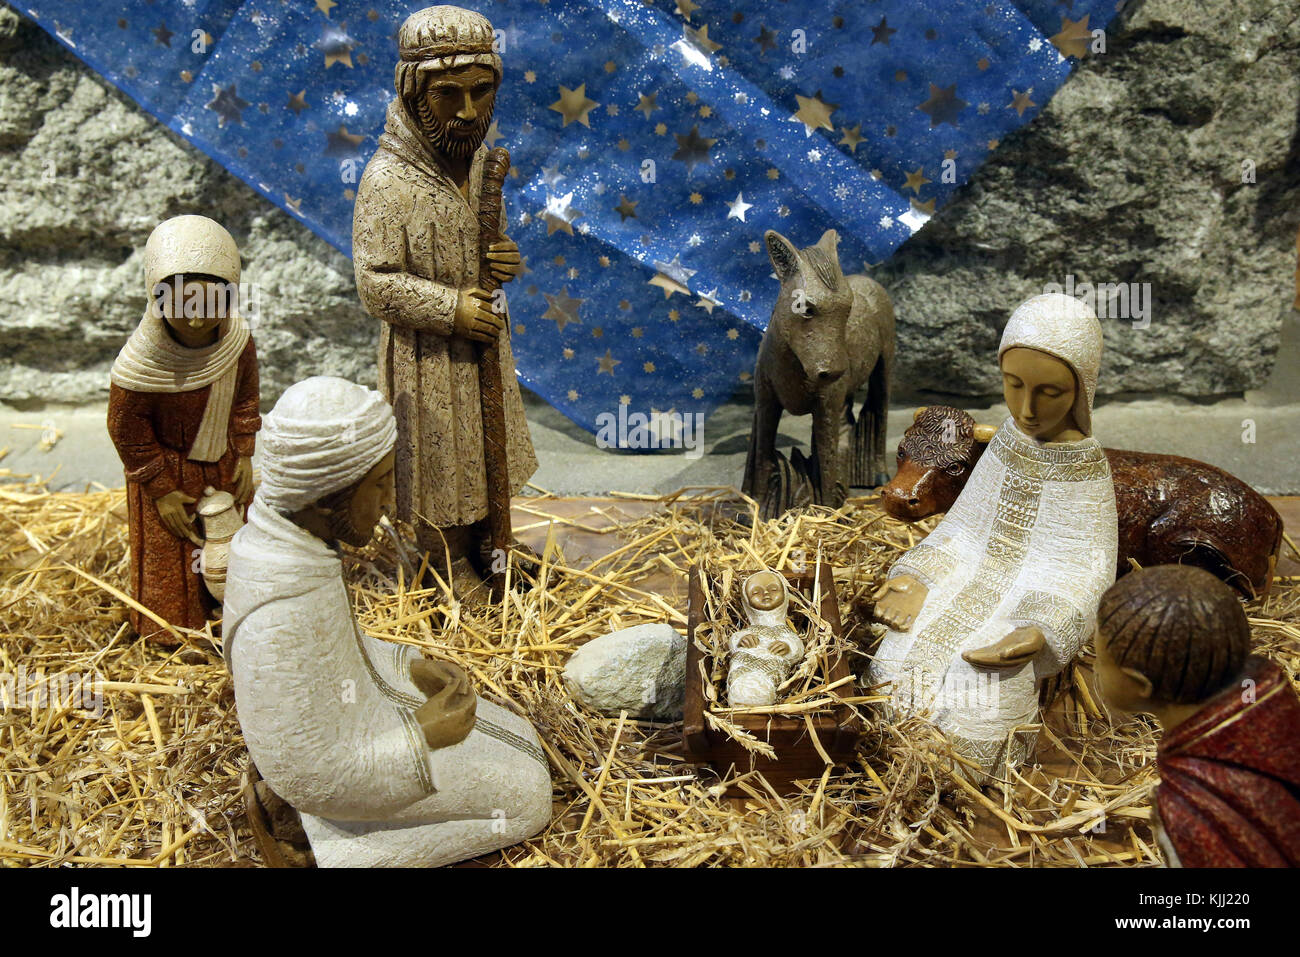 Christmas crib with baby Jesus.  France. - Stock Image